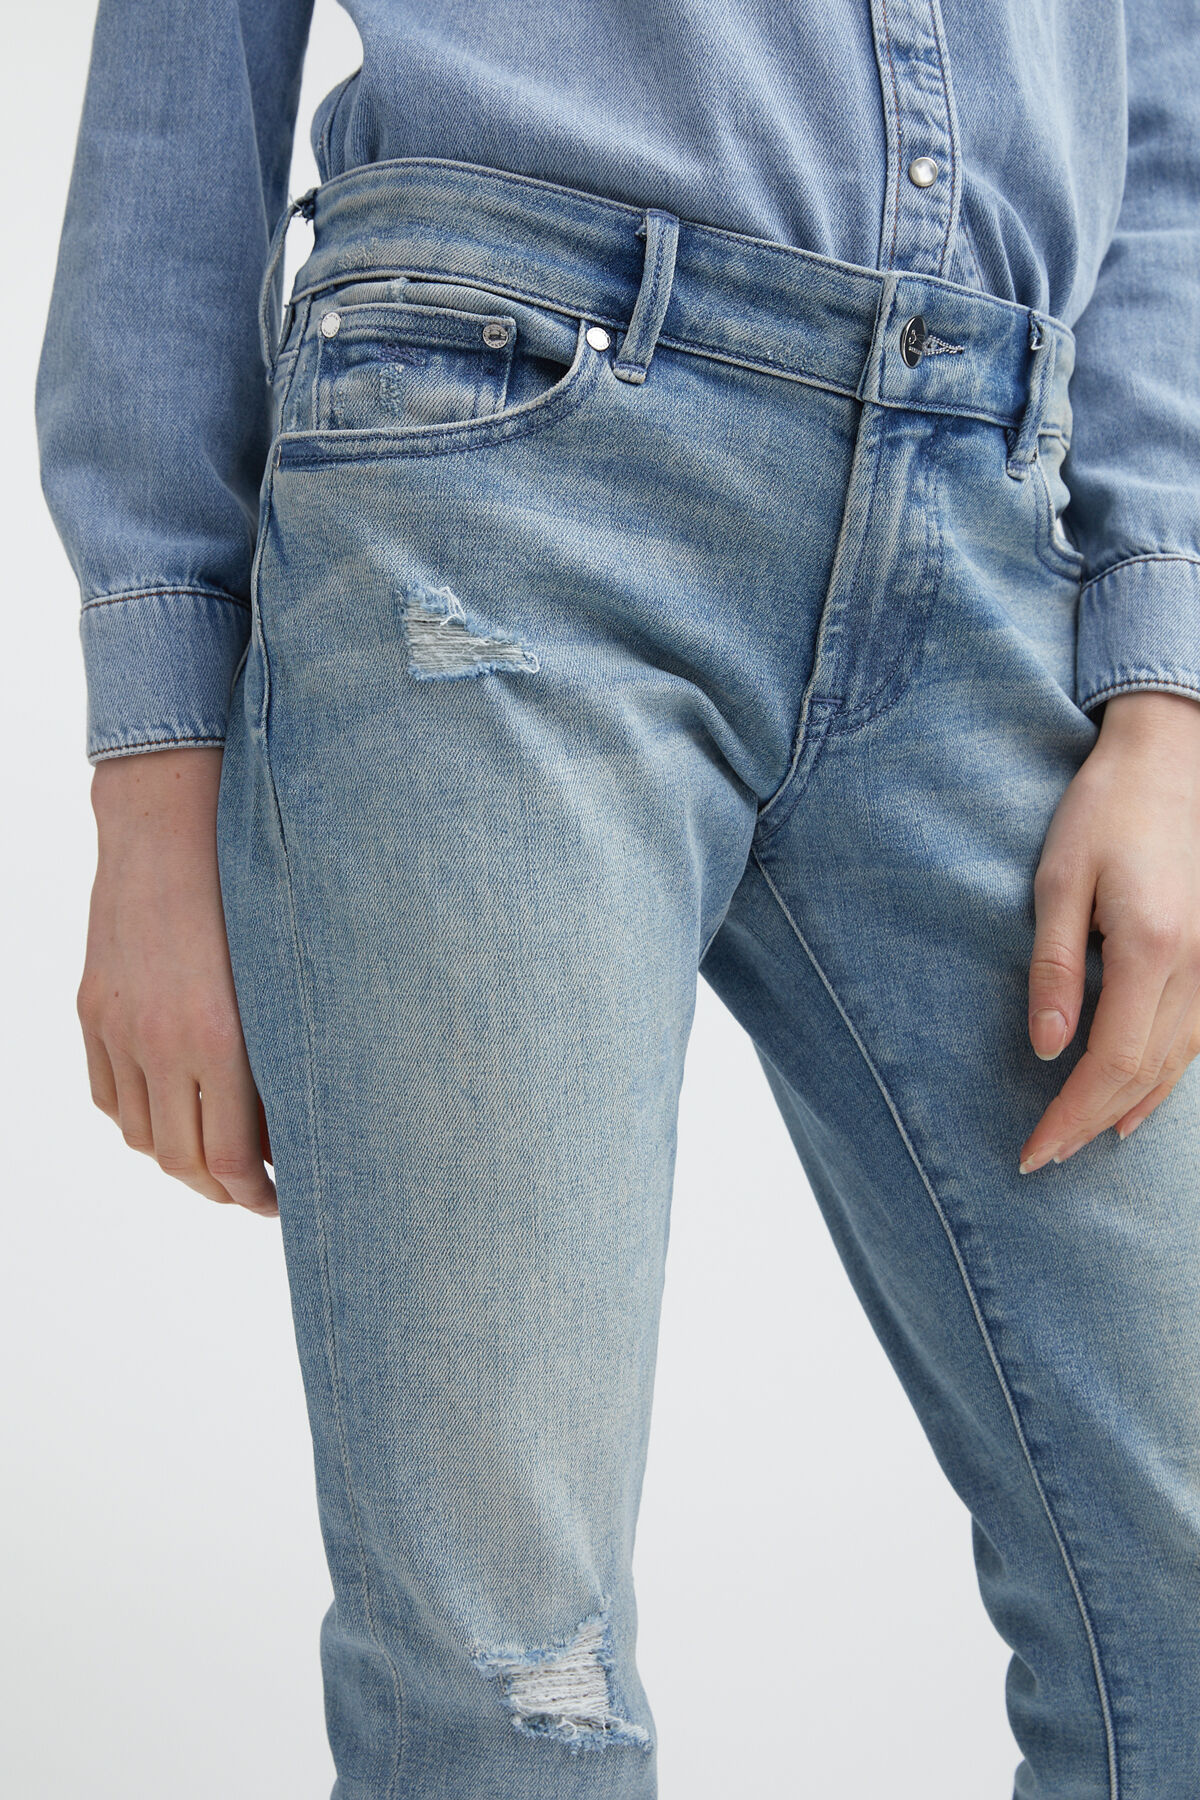 MONROE Ripped & Repaired Denim - Girlfriend Fit